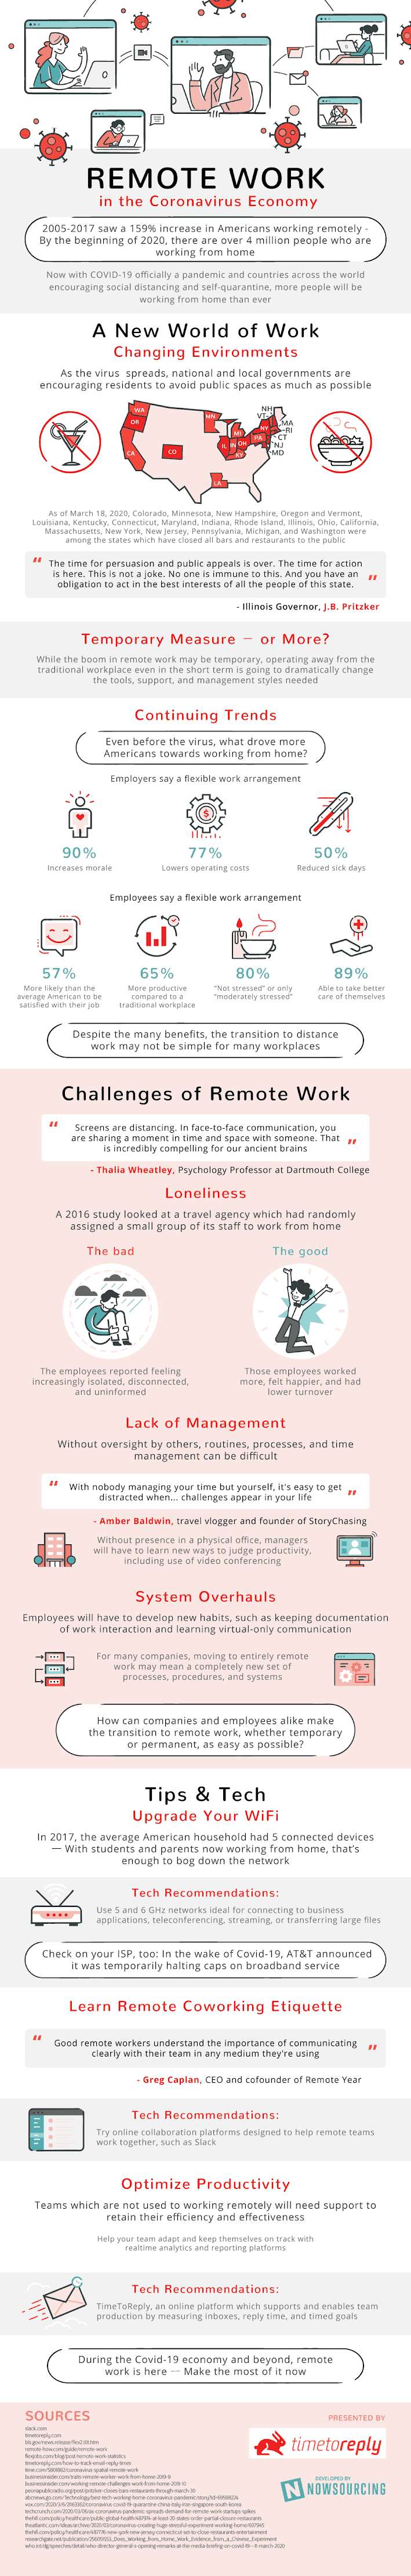 Remote Work in the Coronavirus Economy #infographic